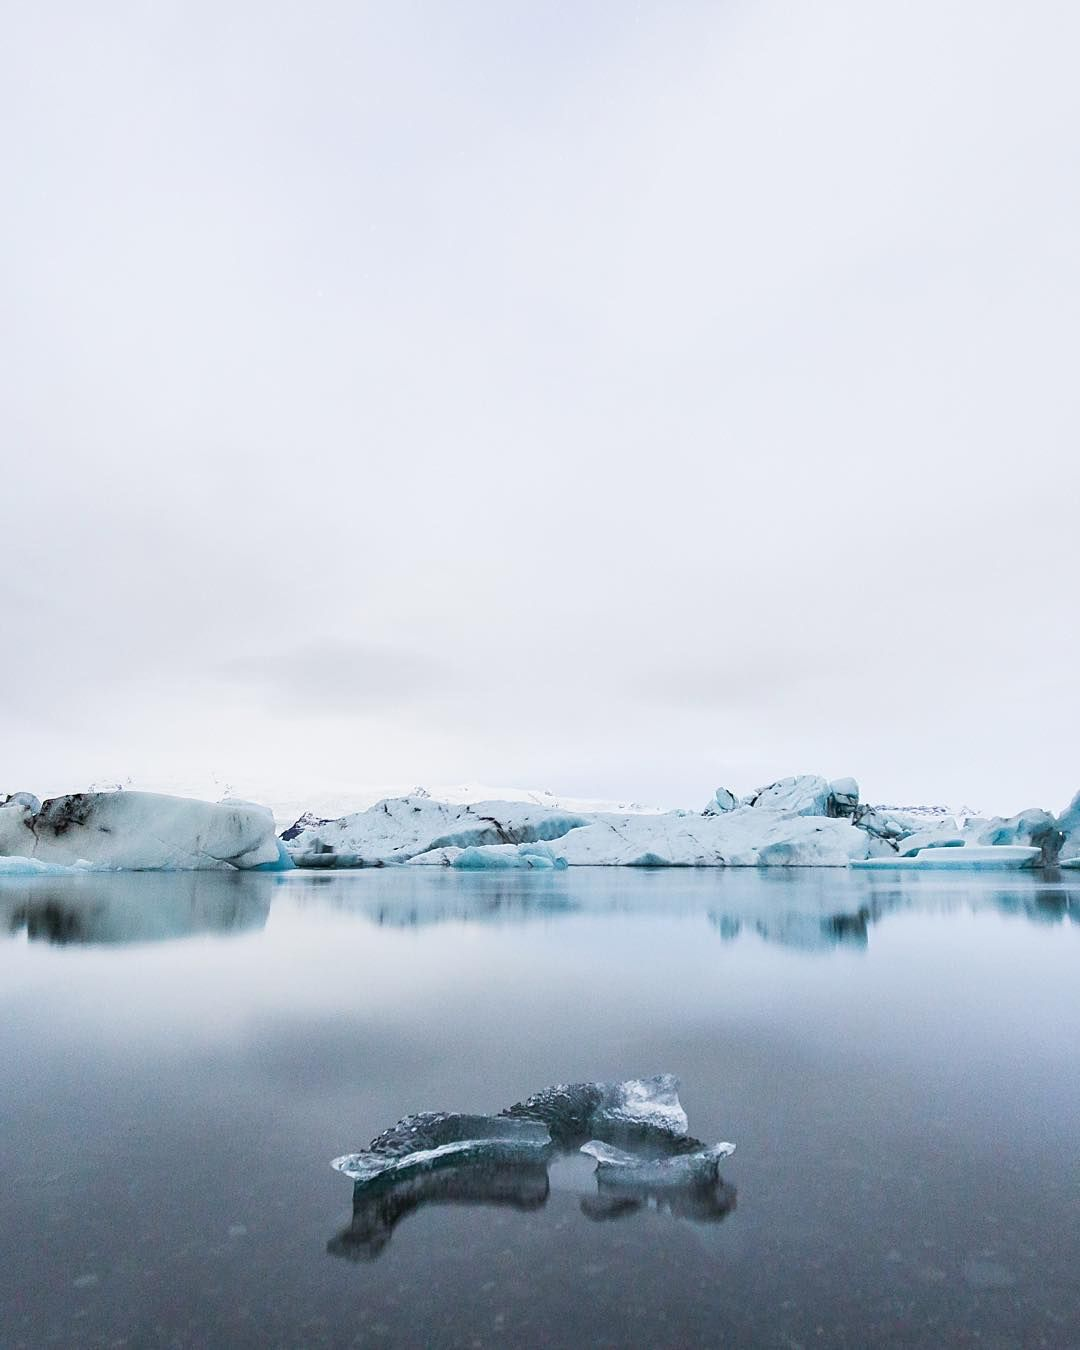 Glowing ice in the midnight light.  We had a real cool meet up here in Reykjavík this afternoon the @instagram community is truly rad and it's great to see so many bright minds come together for photography.  Heading south tomorrow with some awesome NY folk stay tuned for shenanigans  by benjaminhardman